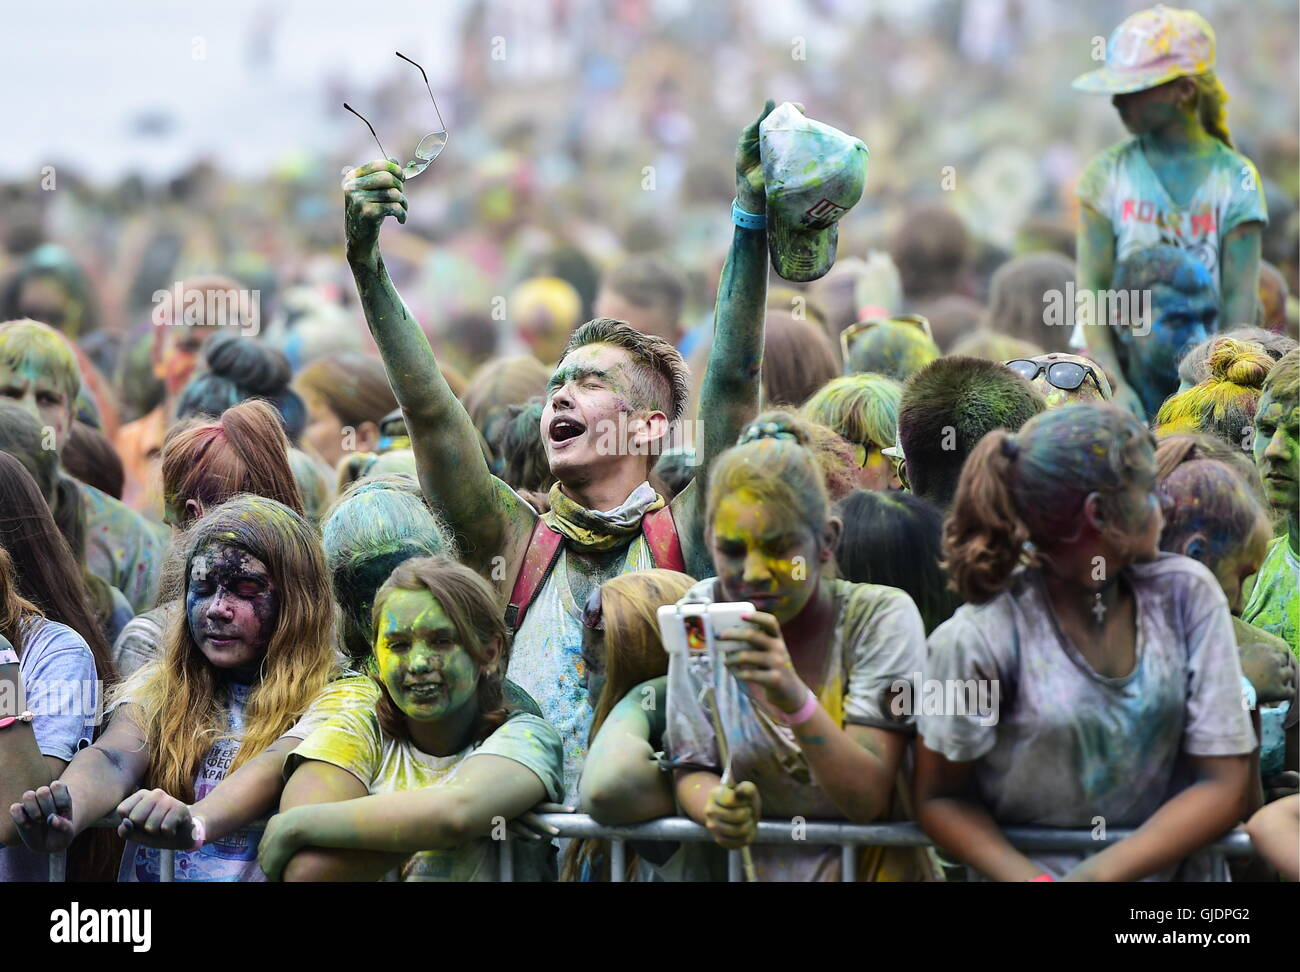 Vladivostok, Russia. 13th Aug, 2016. Young people covered in coloured powder during the Holi Festival of Colours - Stock Image